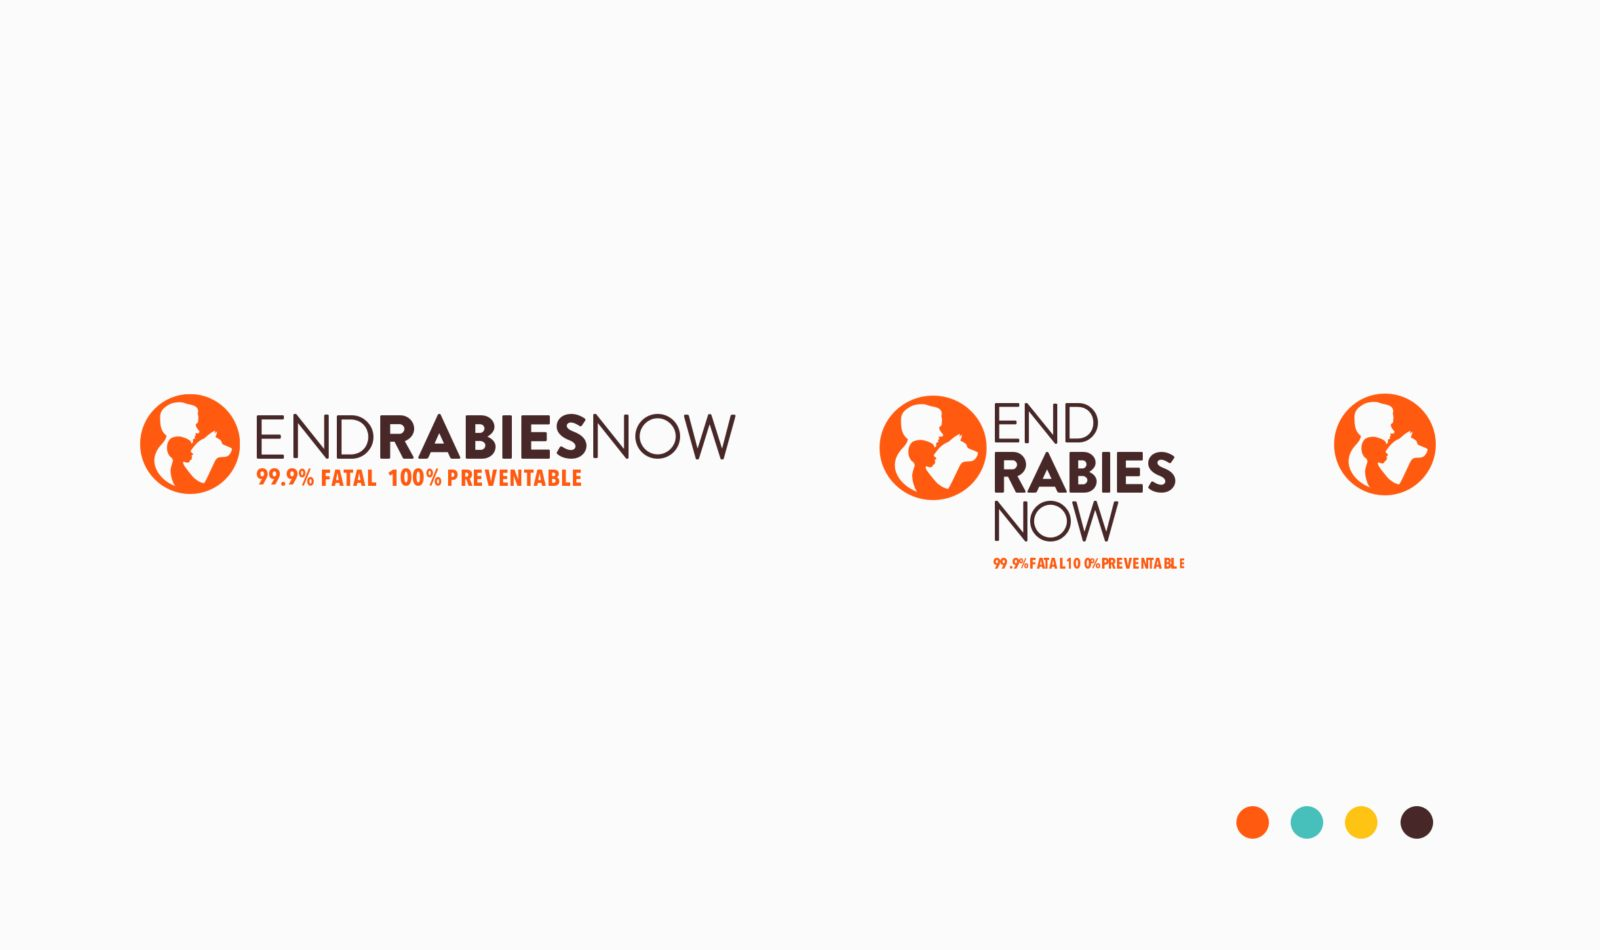 03 Identity Global Alliance Rabies Control